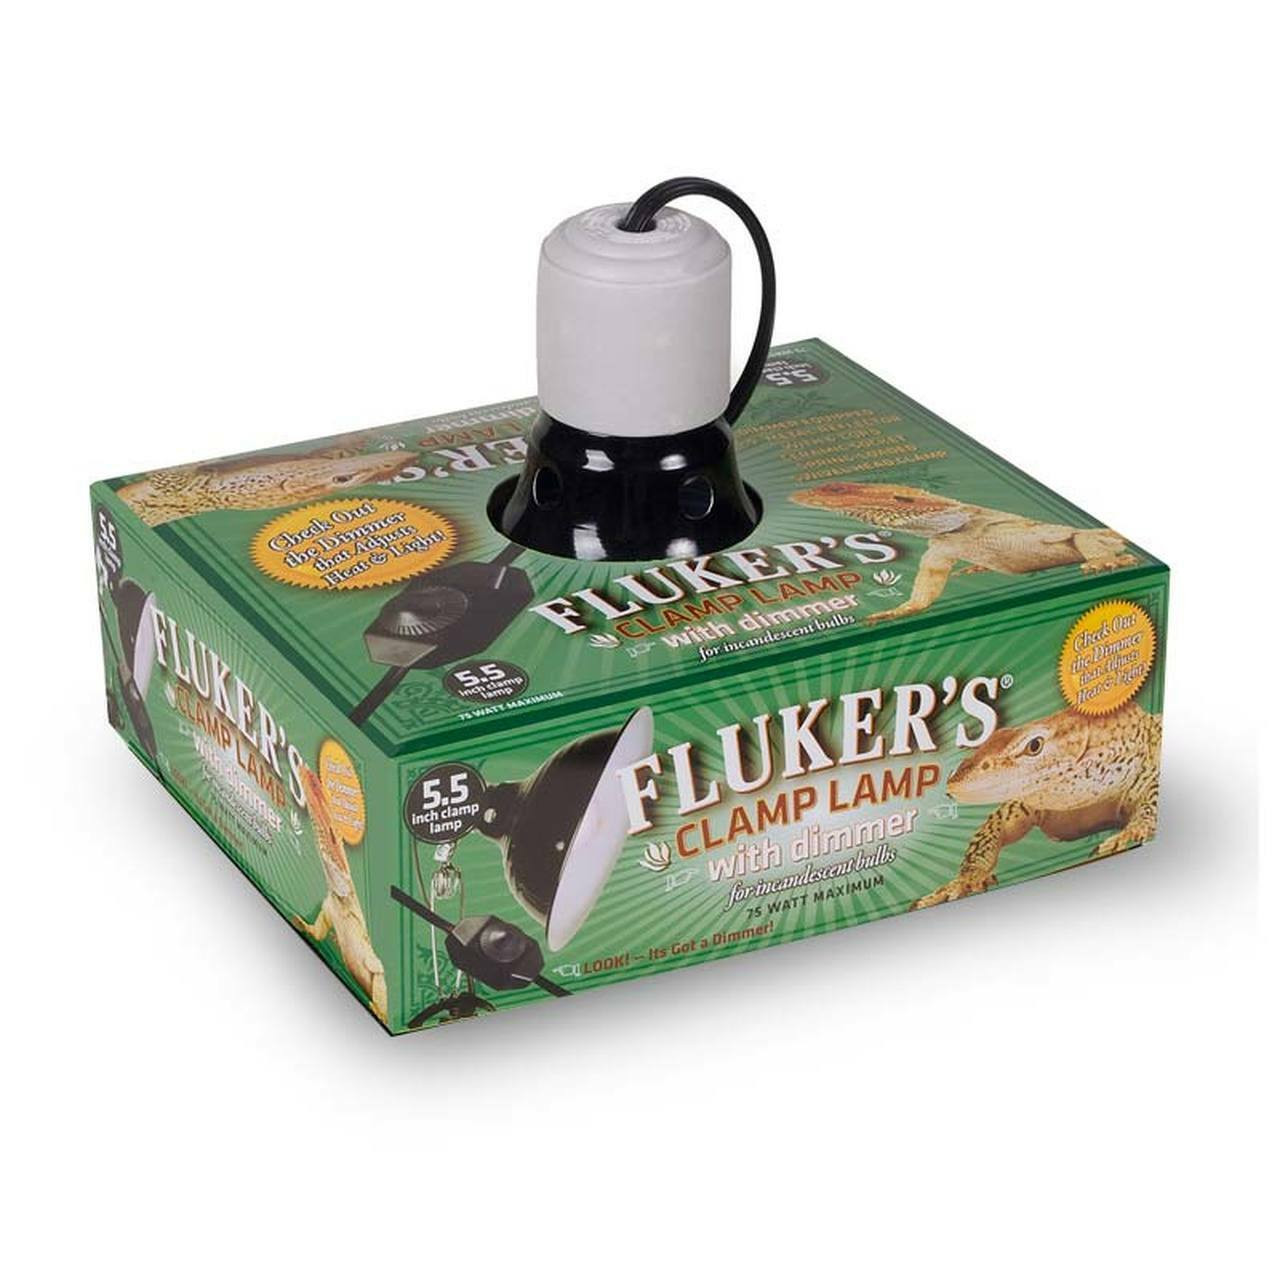 Flukers Flukers Repta-Clamp Ceramic Reflector Dome with Dimmer Switch 5.5